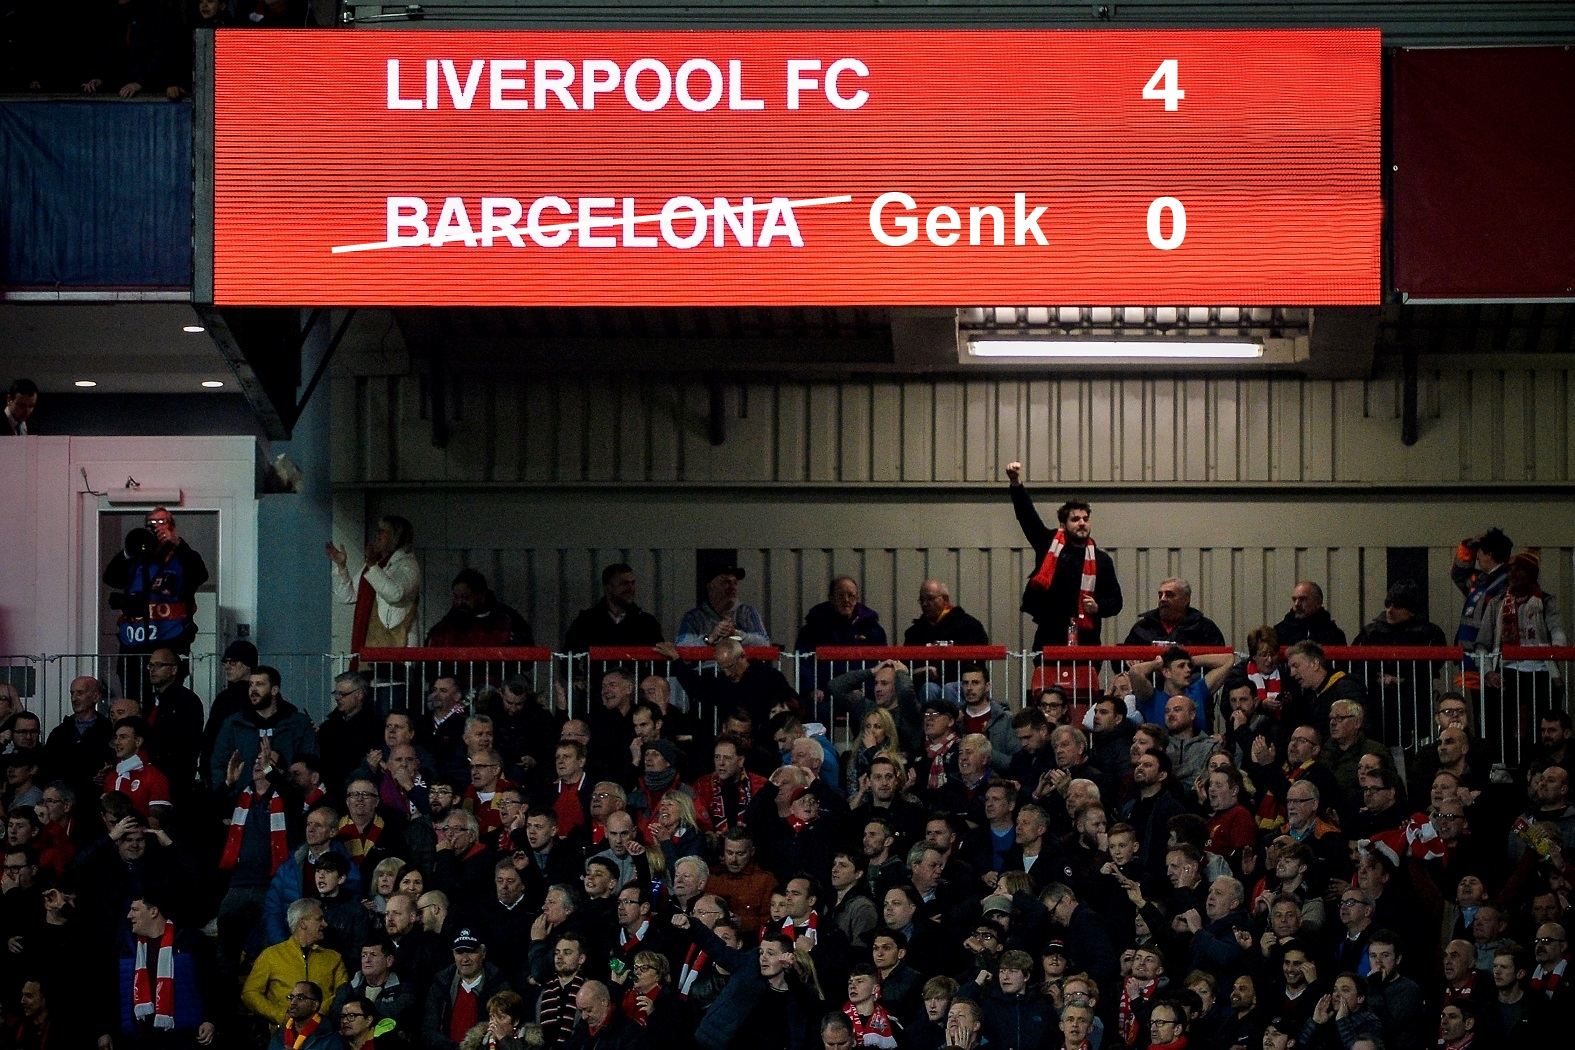 LFC-scoreboard-showing-four-nil-vs-Genk